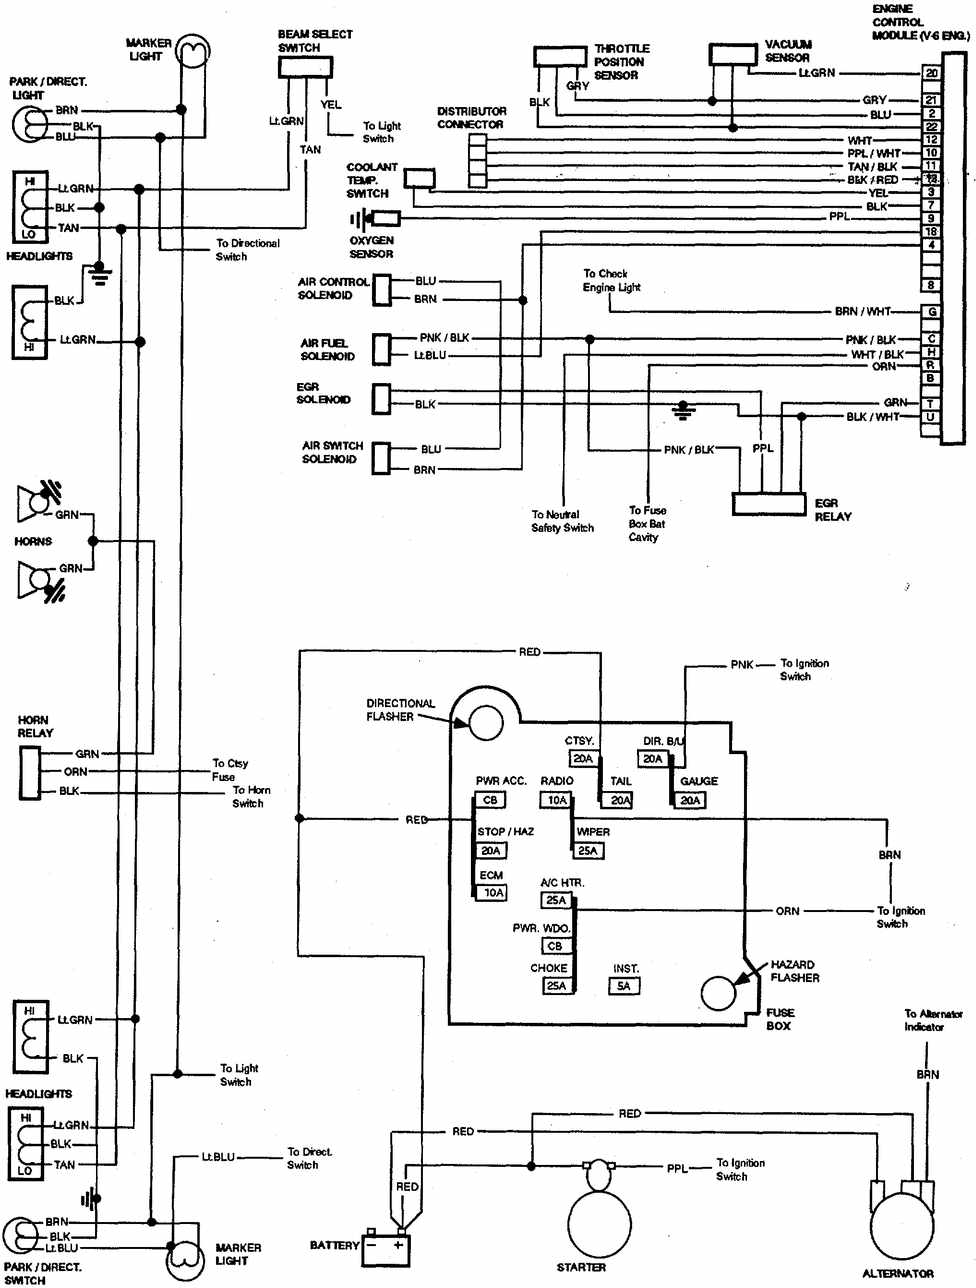 wiring diagram power ram 350 1991